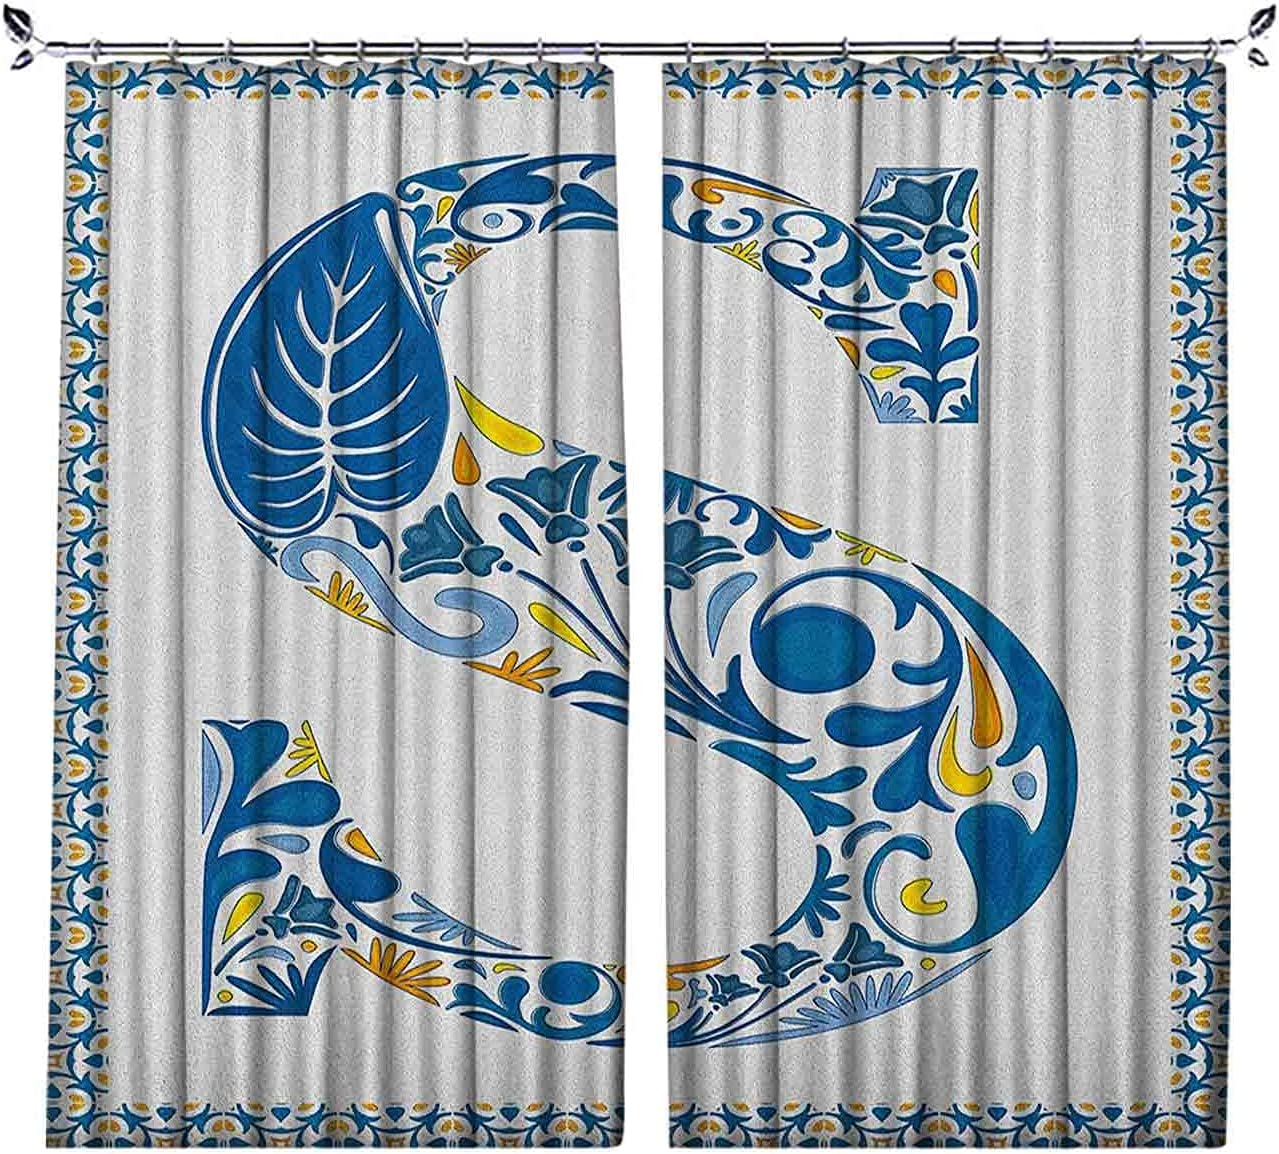 Pinch Pleat Textured Letter S Old Ultra-Cheap Deals Alphabet Curtains Import T Fashioned